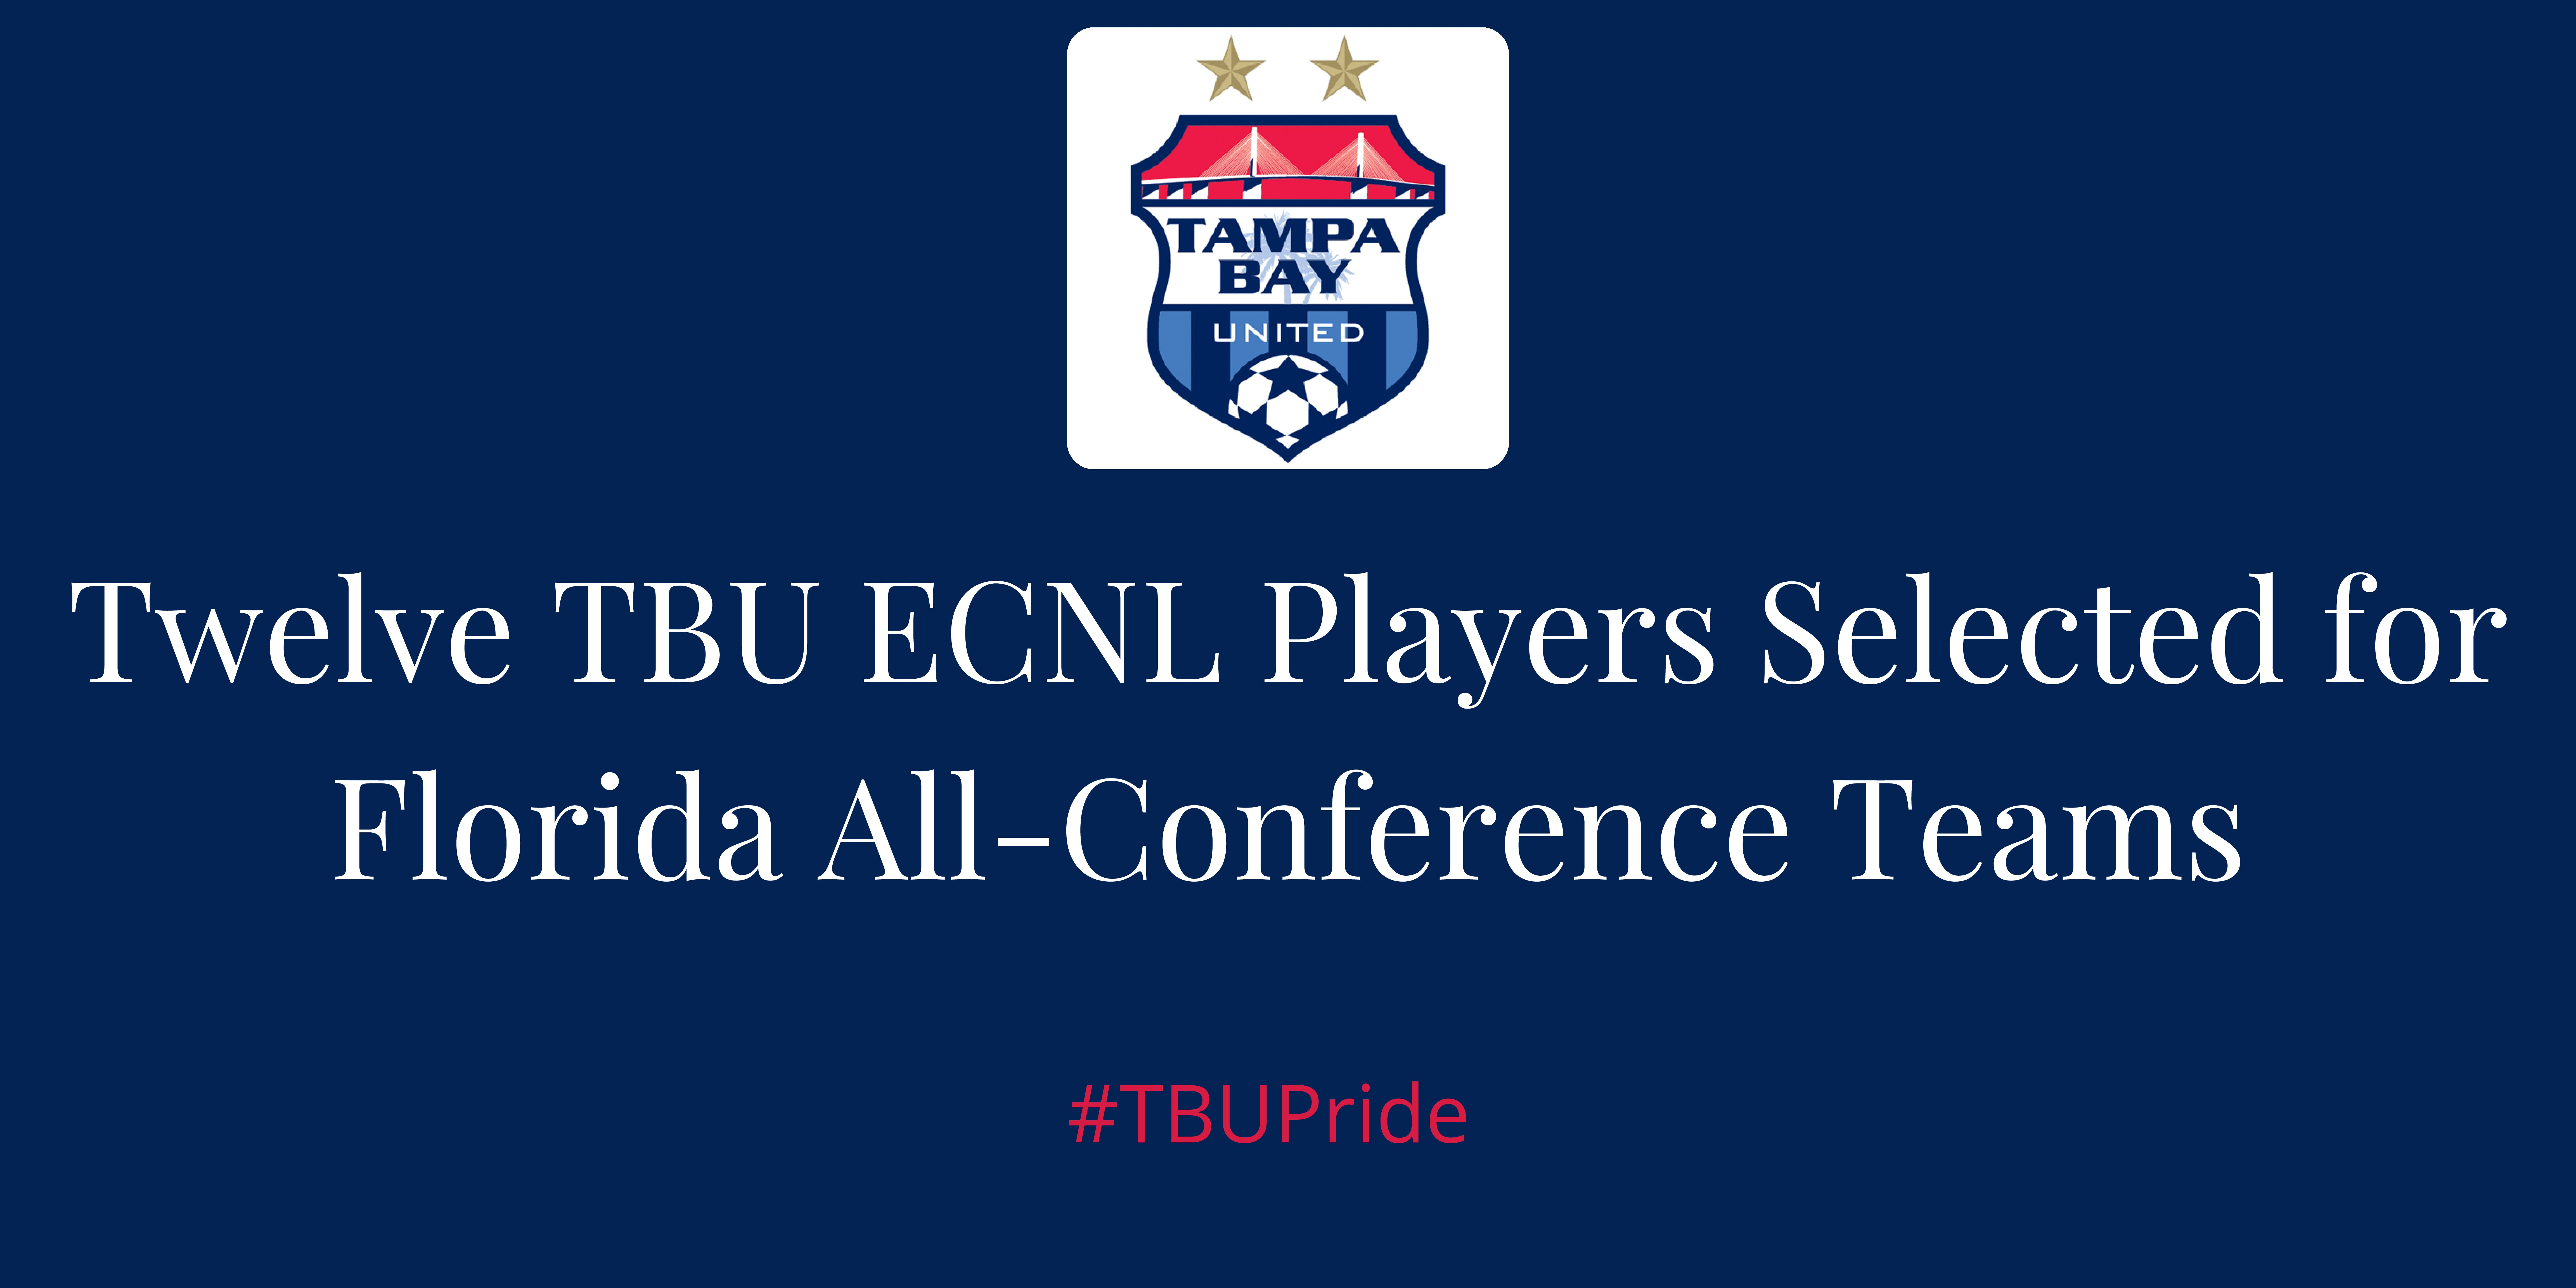 Tampa Bay United Dominate the All-Conference Team Rosters